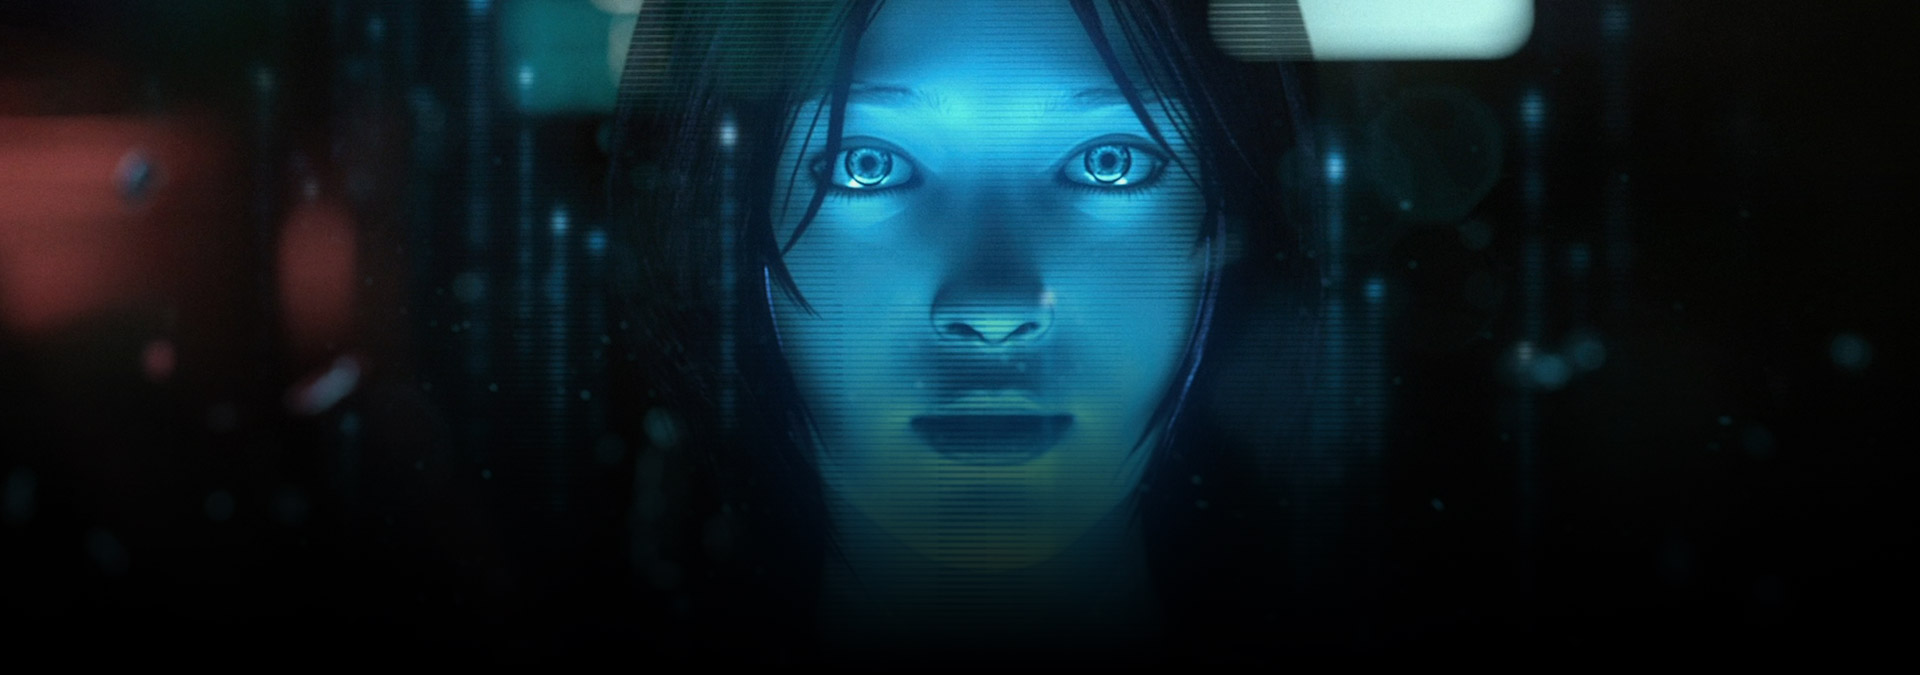 Cortana Wallpaper 1920x1080 Pictures To Pin On 1920x675